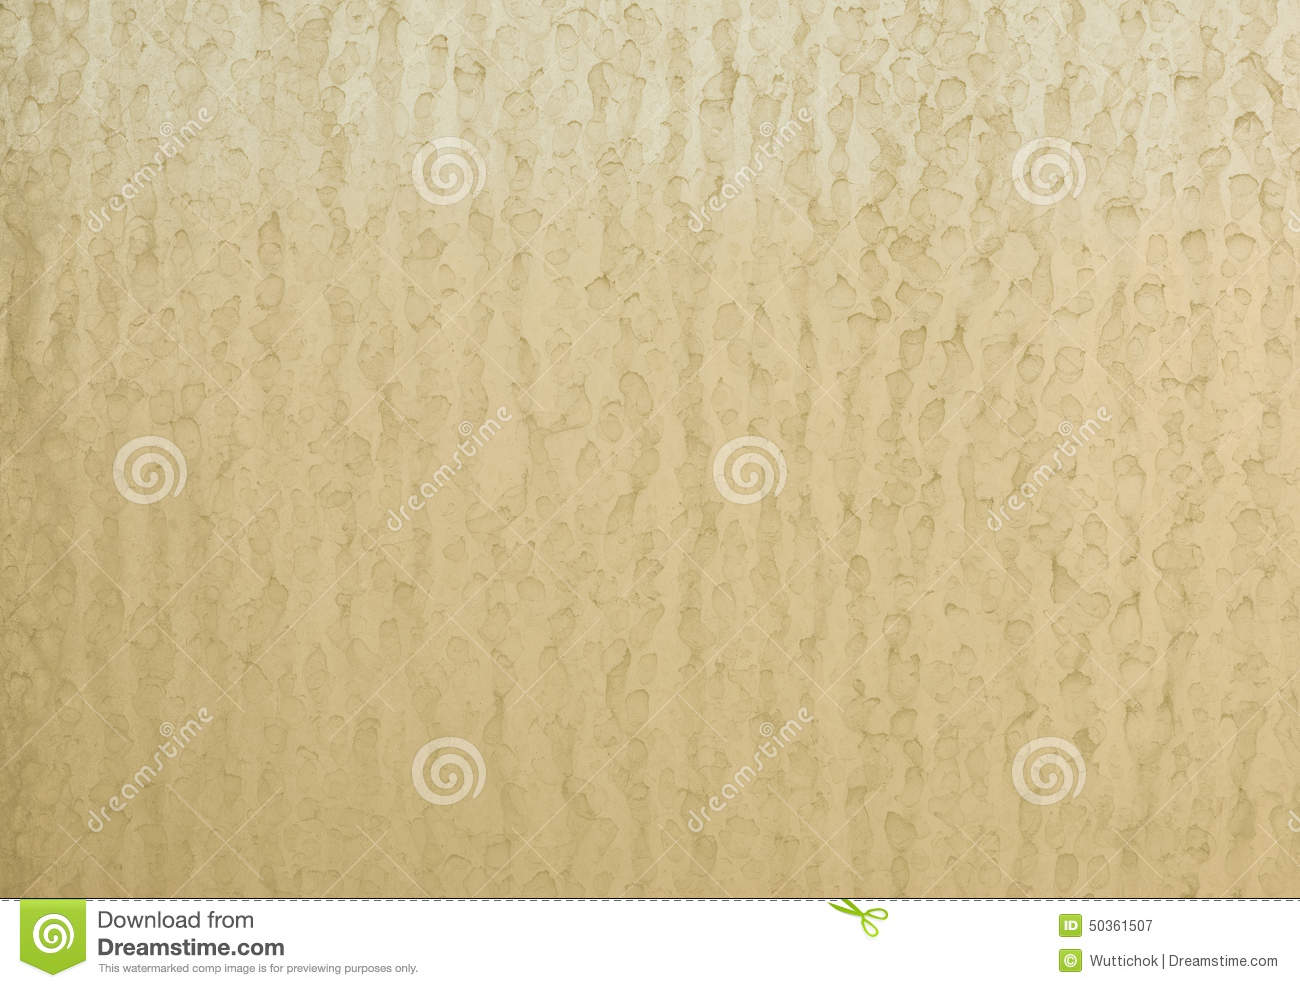 Water stains on walls in bathroom - Bathroom Dry Glass Shower Soap Wall Water Reflection Vintage Stain